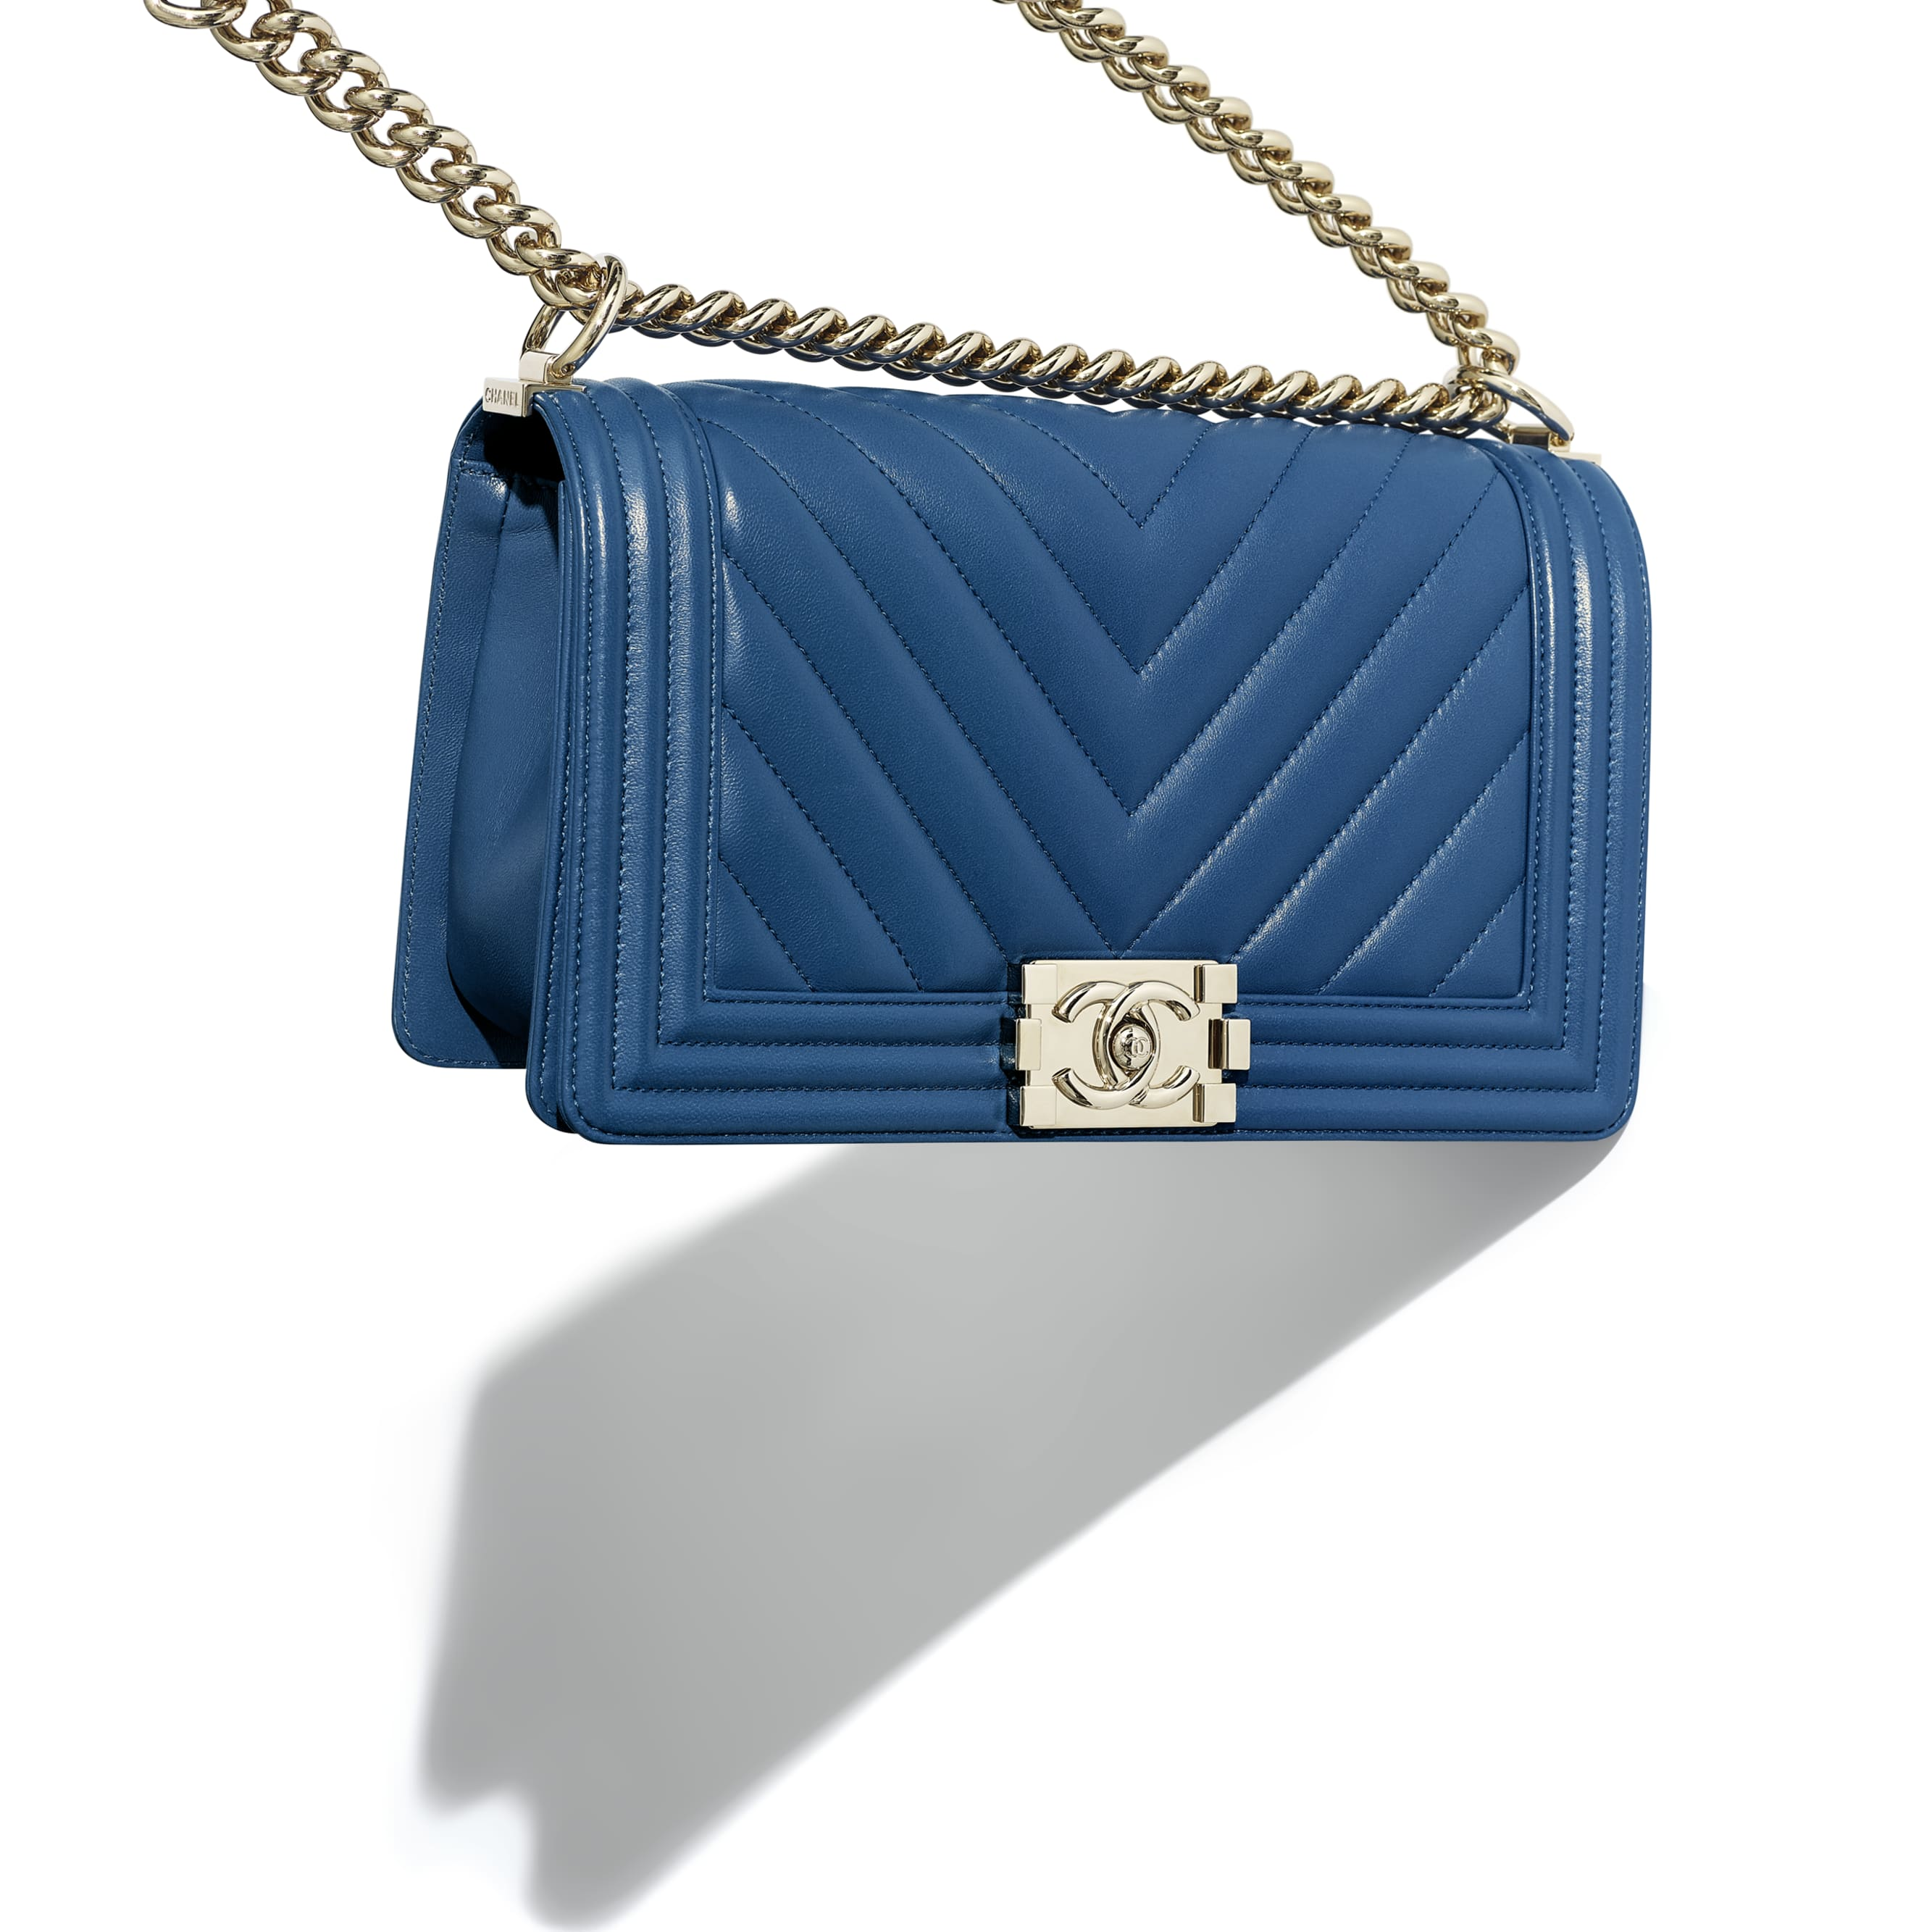 BOY CHANEL Handbag - Dark Blue - Calfskin & Gold-Tone Metal - Extra view - see standard sized version